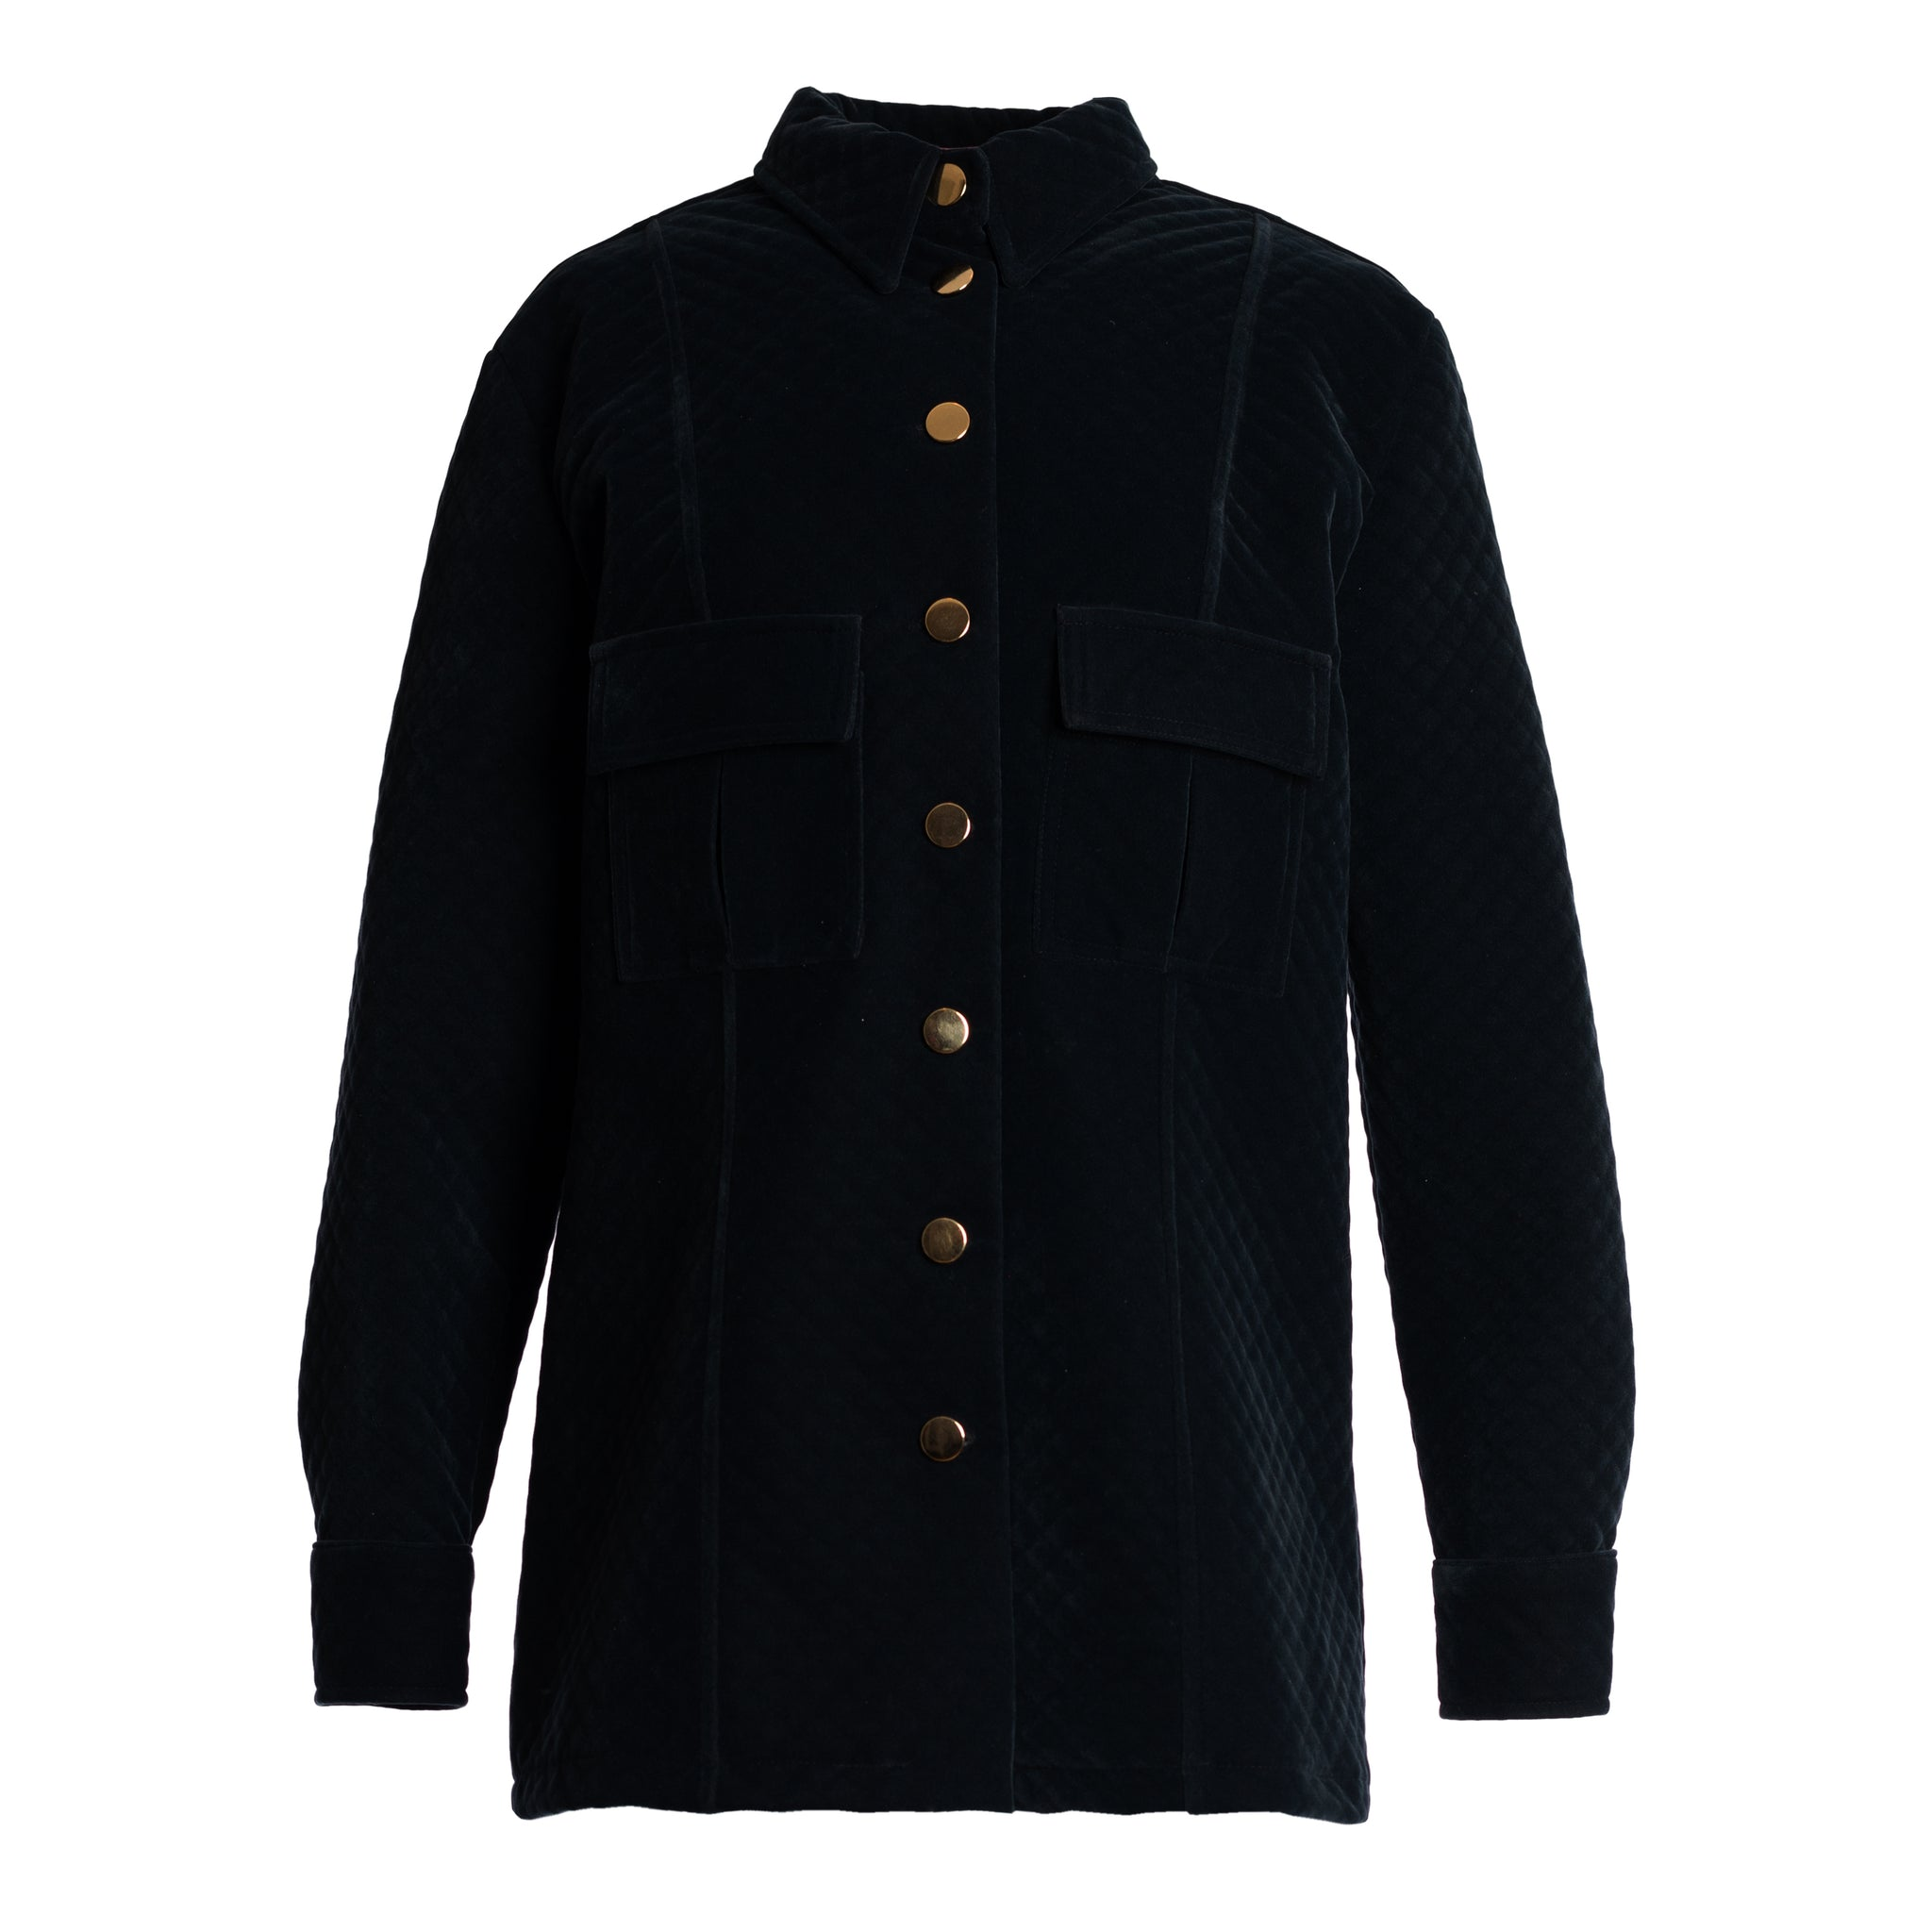 SKALA Velvet Shirt Jacket